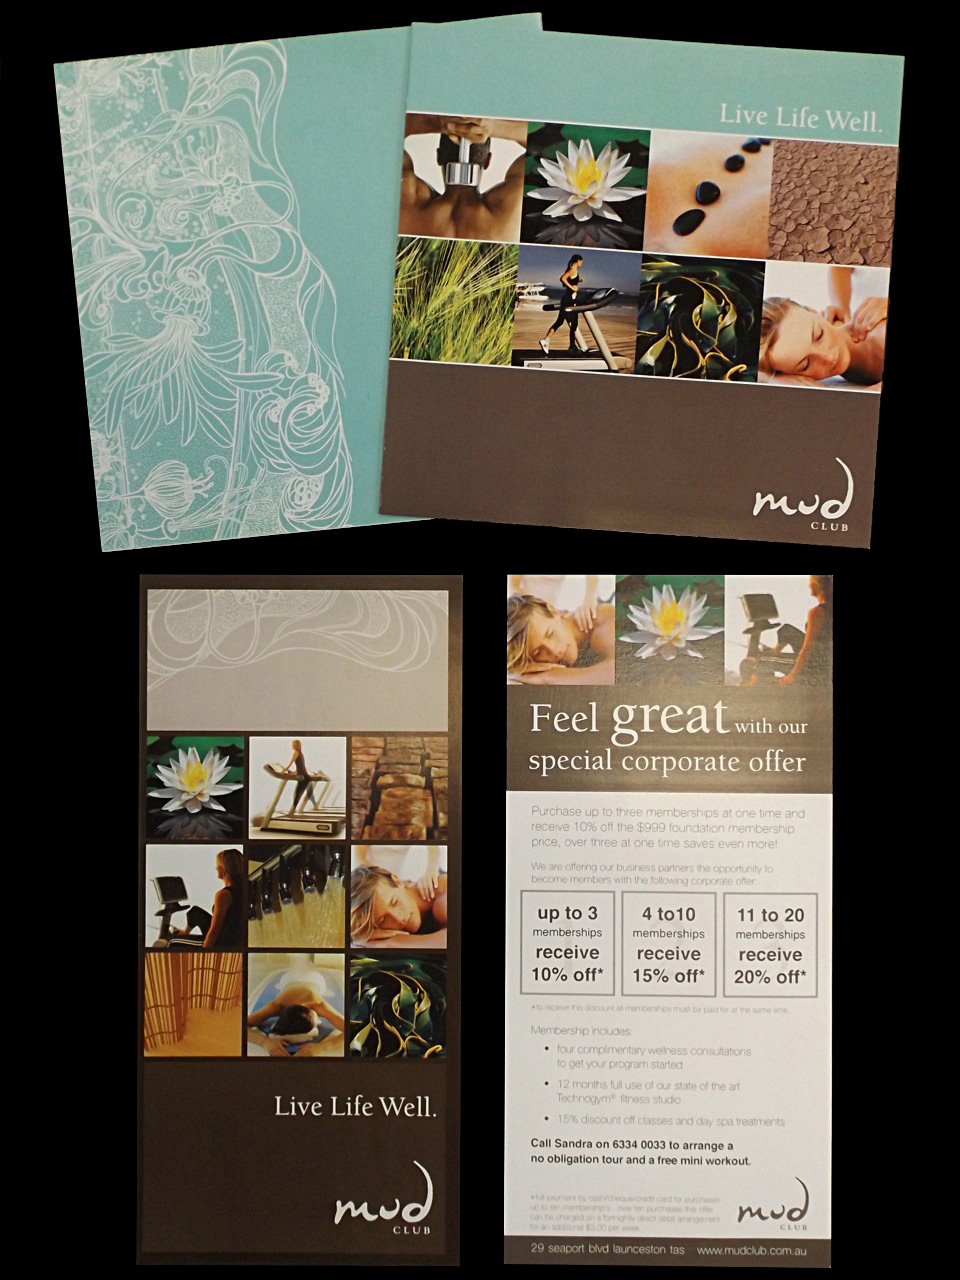 MUD CLUB -Brochures, photo styling, collaterals, gift vouchers and advertising.